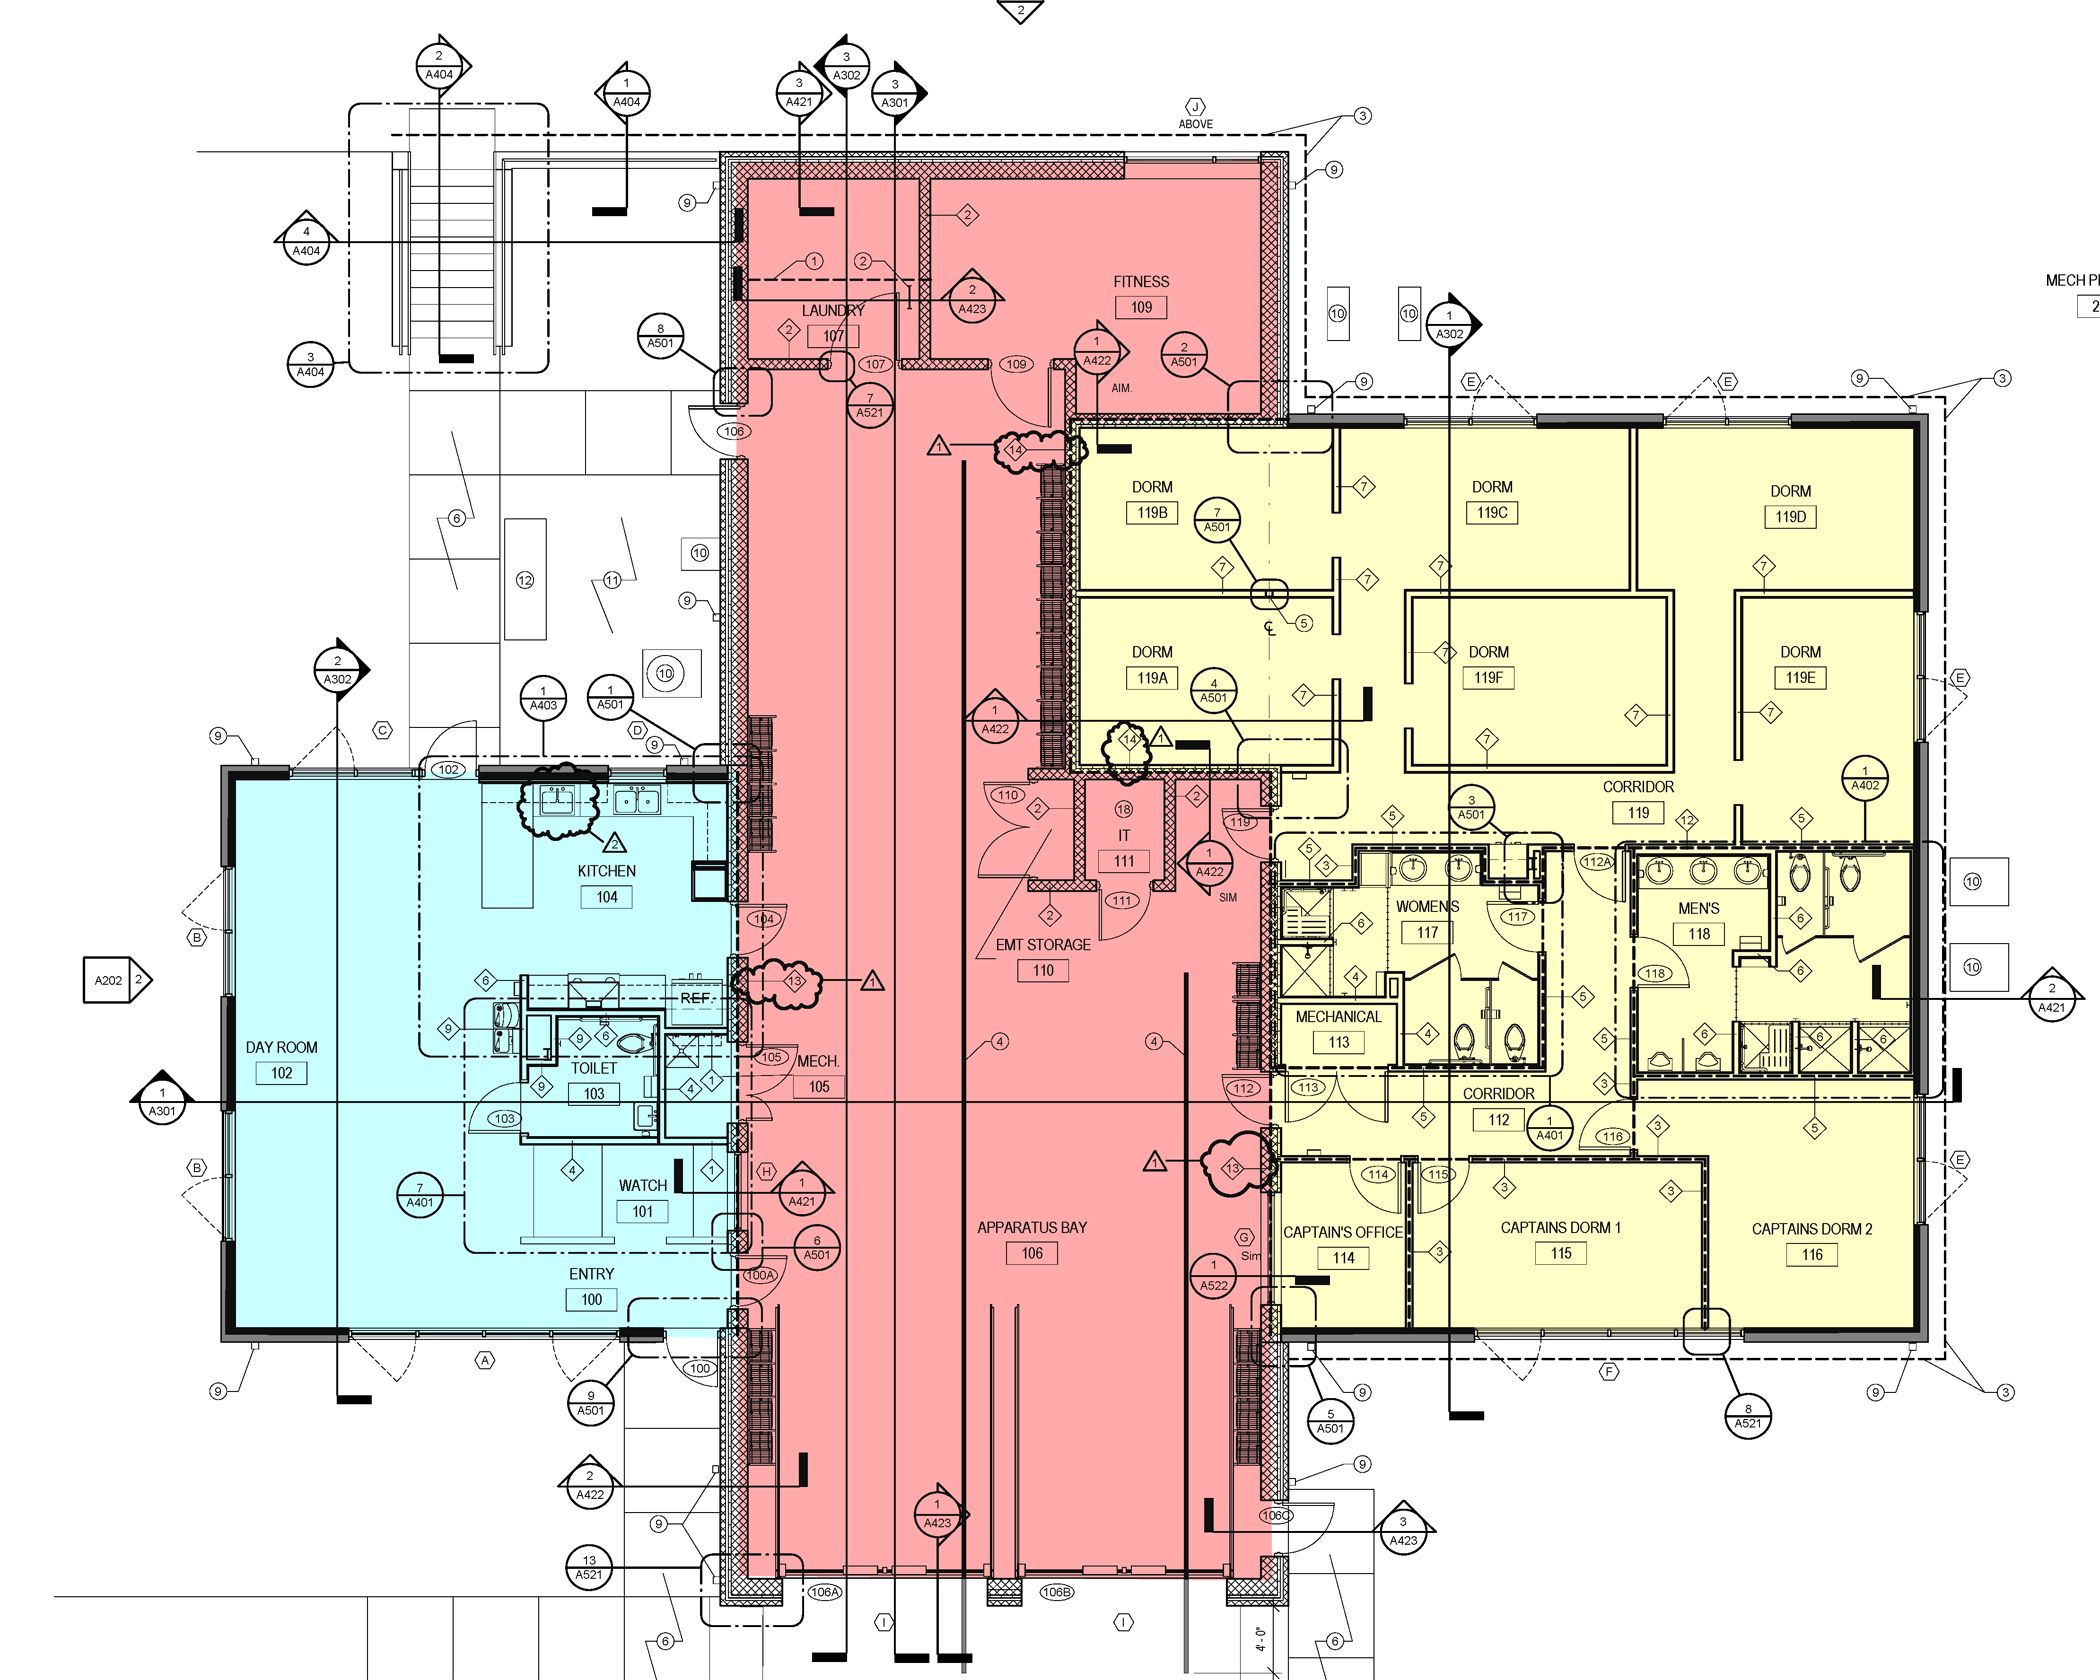 2018-10-12-sta11-renovation-floor-plan-2